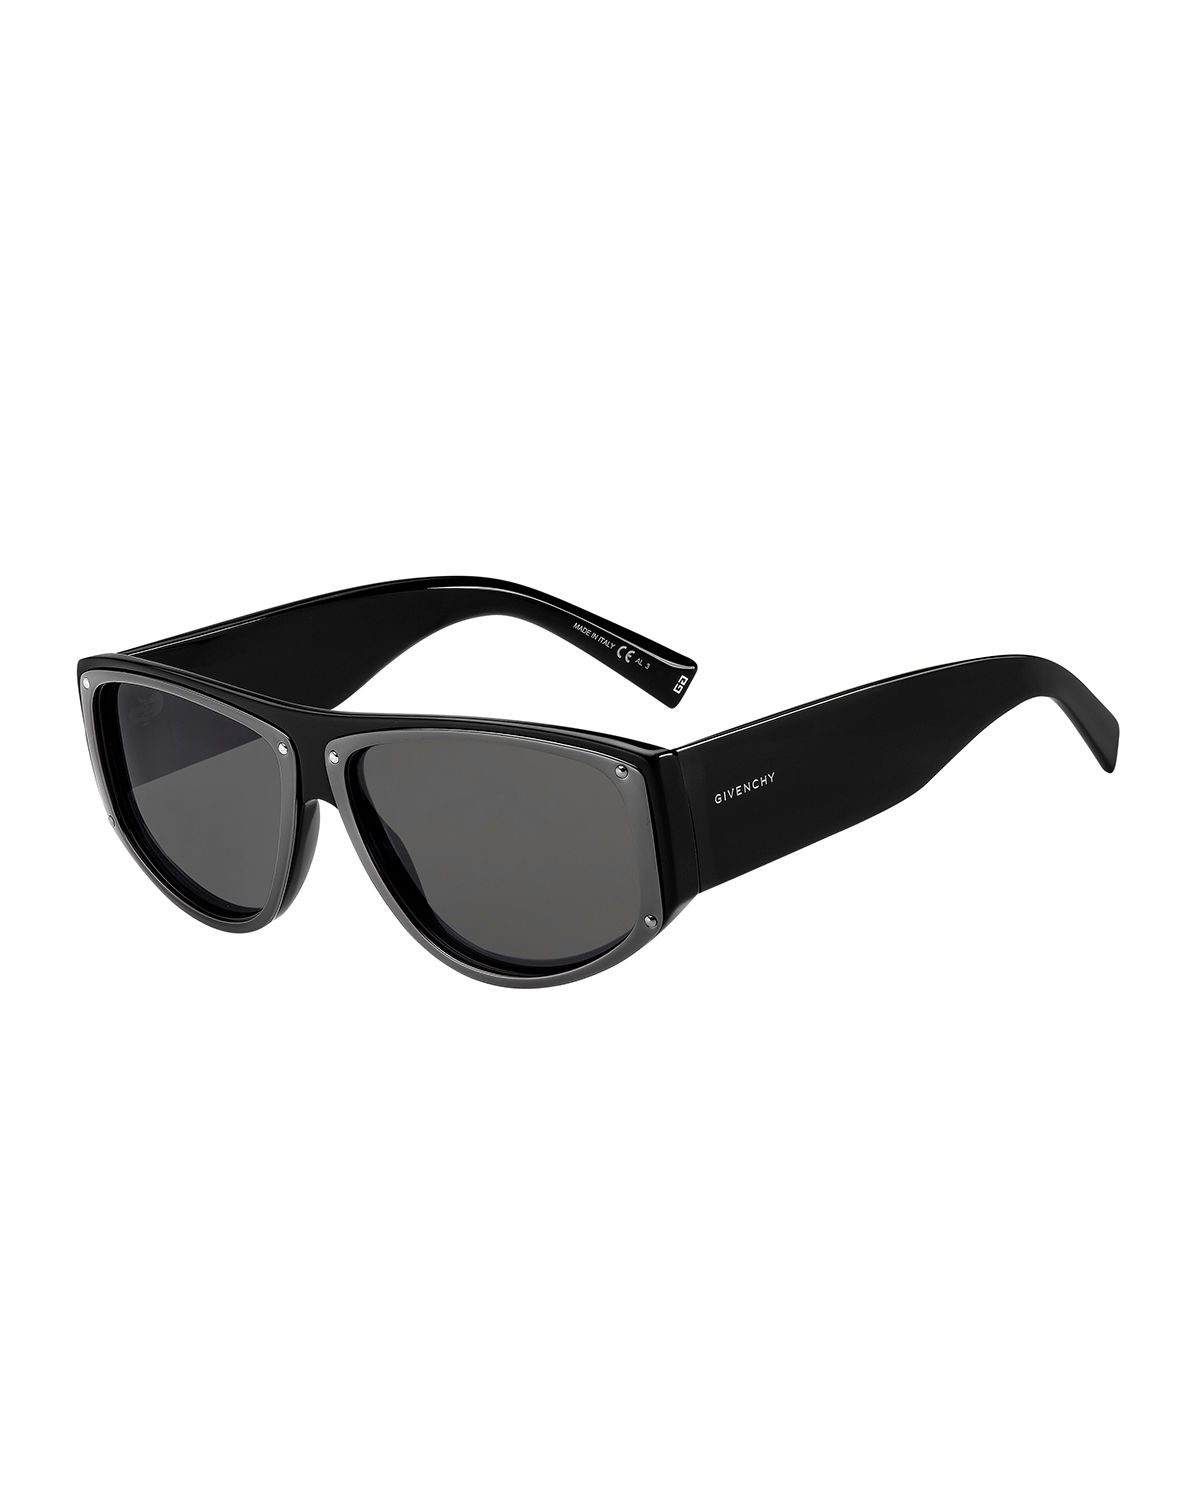 Givenchy MEN'S BOLD LIGHTWEIGHT RECTANGLE SUNGLASSES